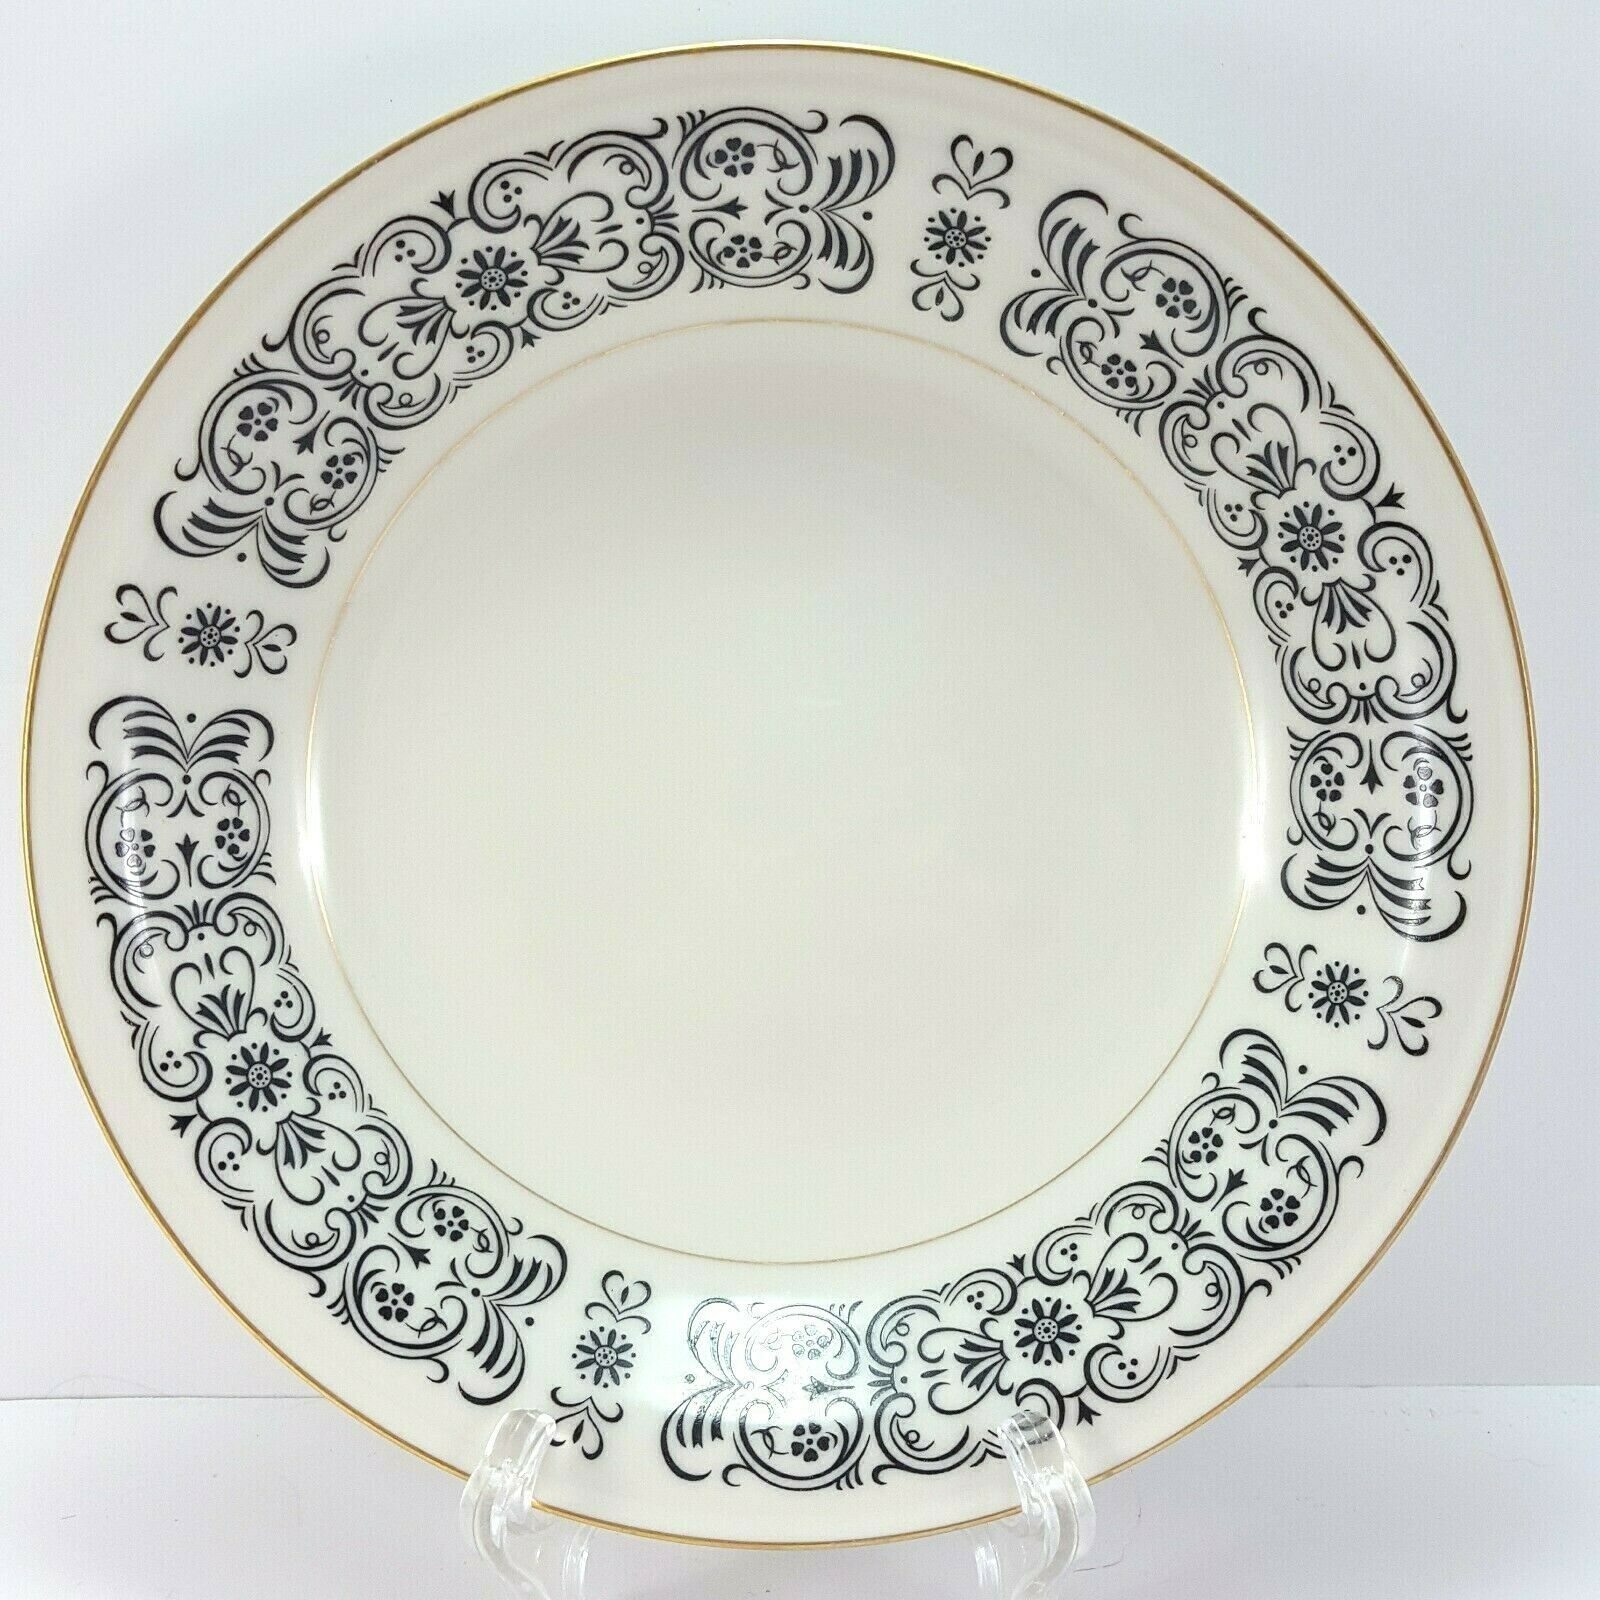 Primary image for Mikasa Riviera 205 Coupe Soup Cereal Bowl Ivory Black Scrolls 7.75""